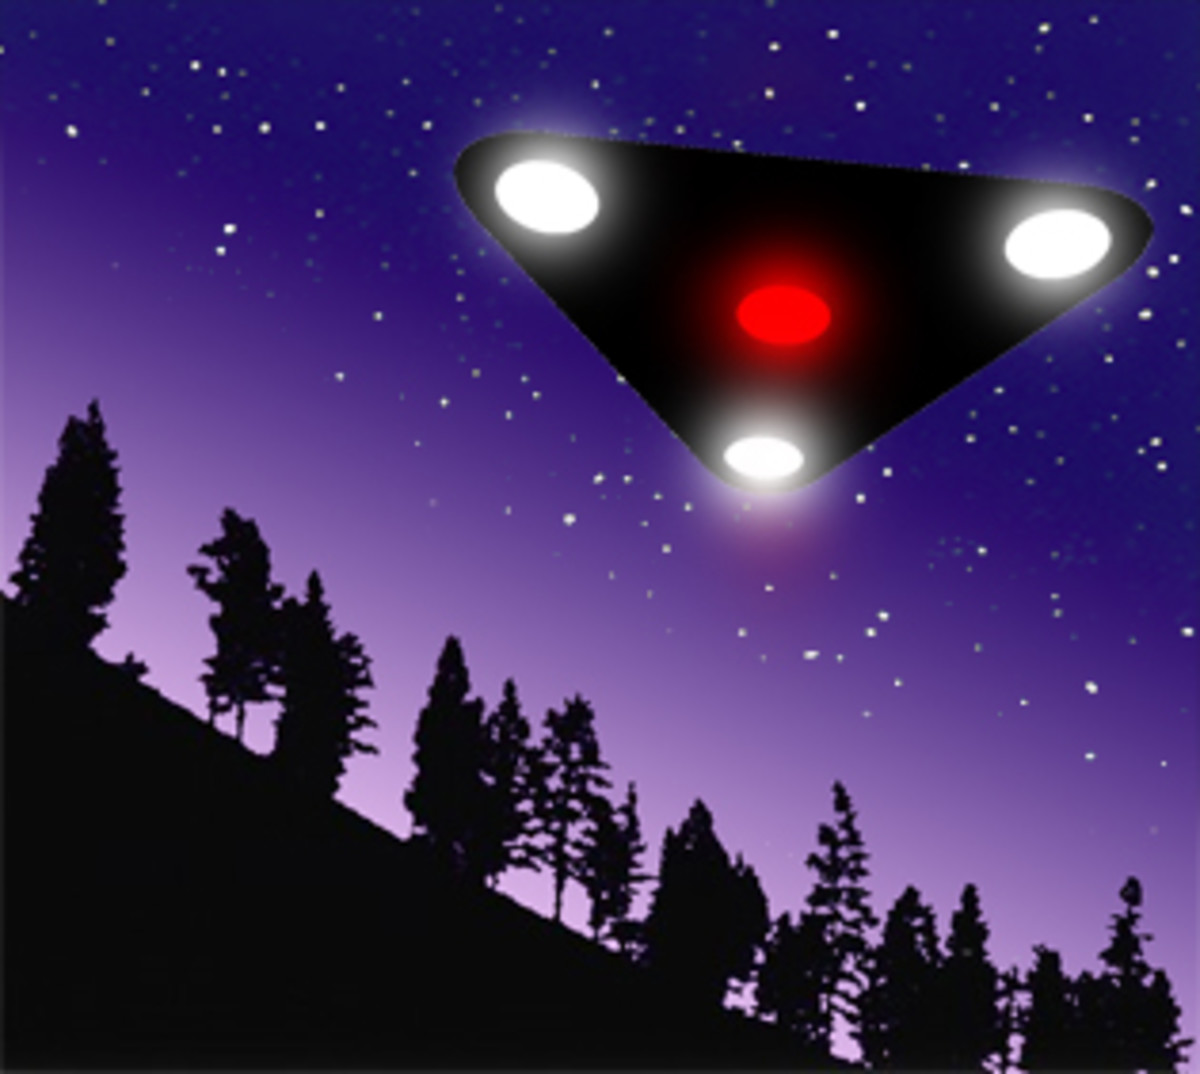 Mysterious sightings of triangle UFOs, Flying Saucers and other types of flying objects have been dismissed as unimportant by the US government, so why is there still so much secrecy about the topic?